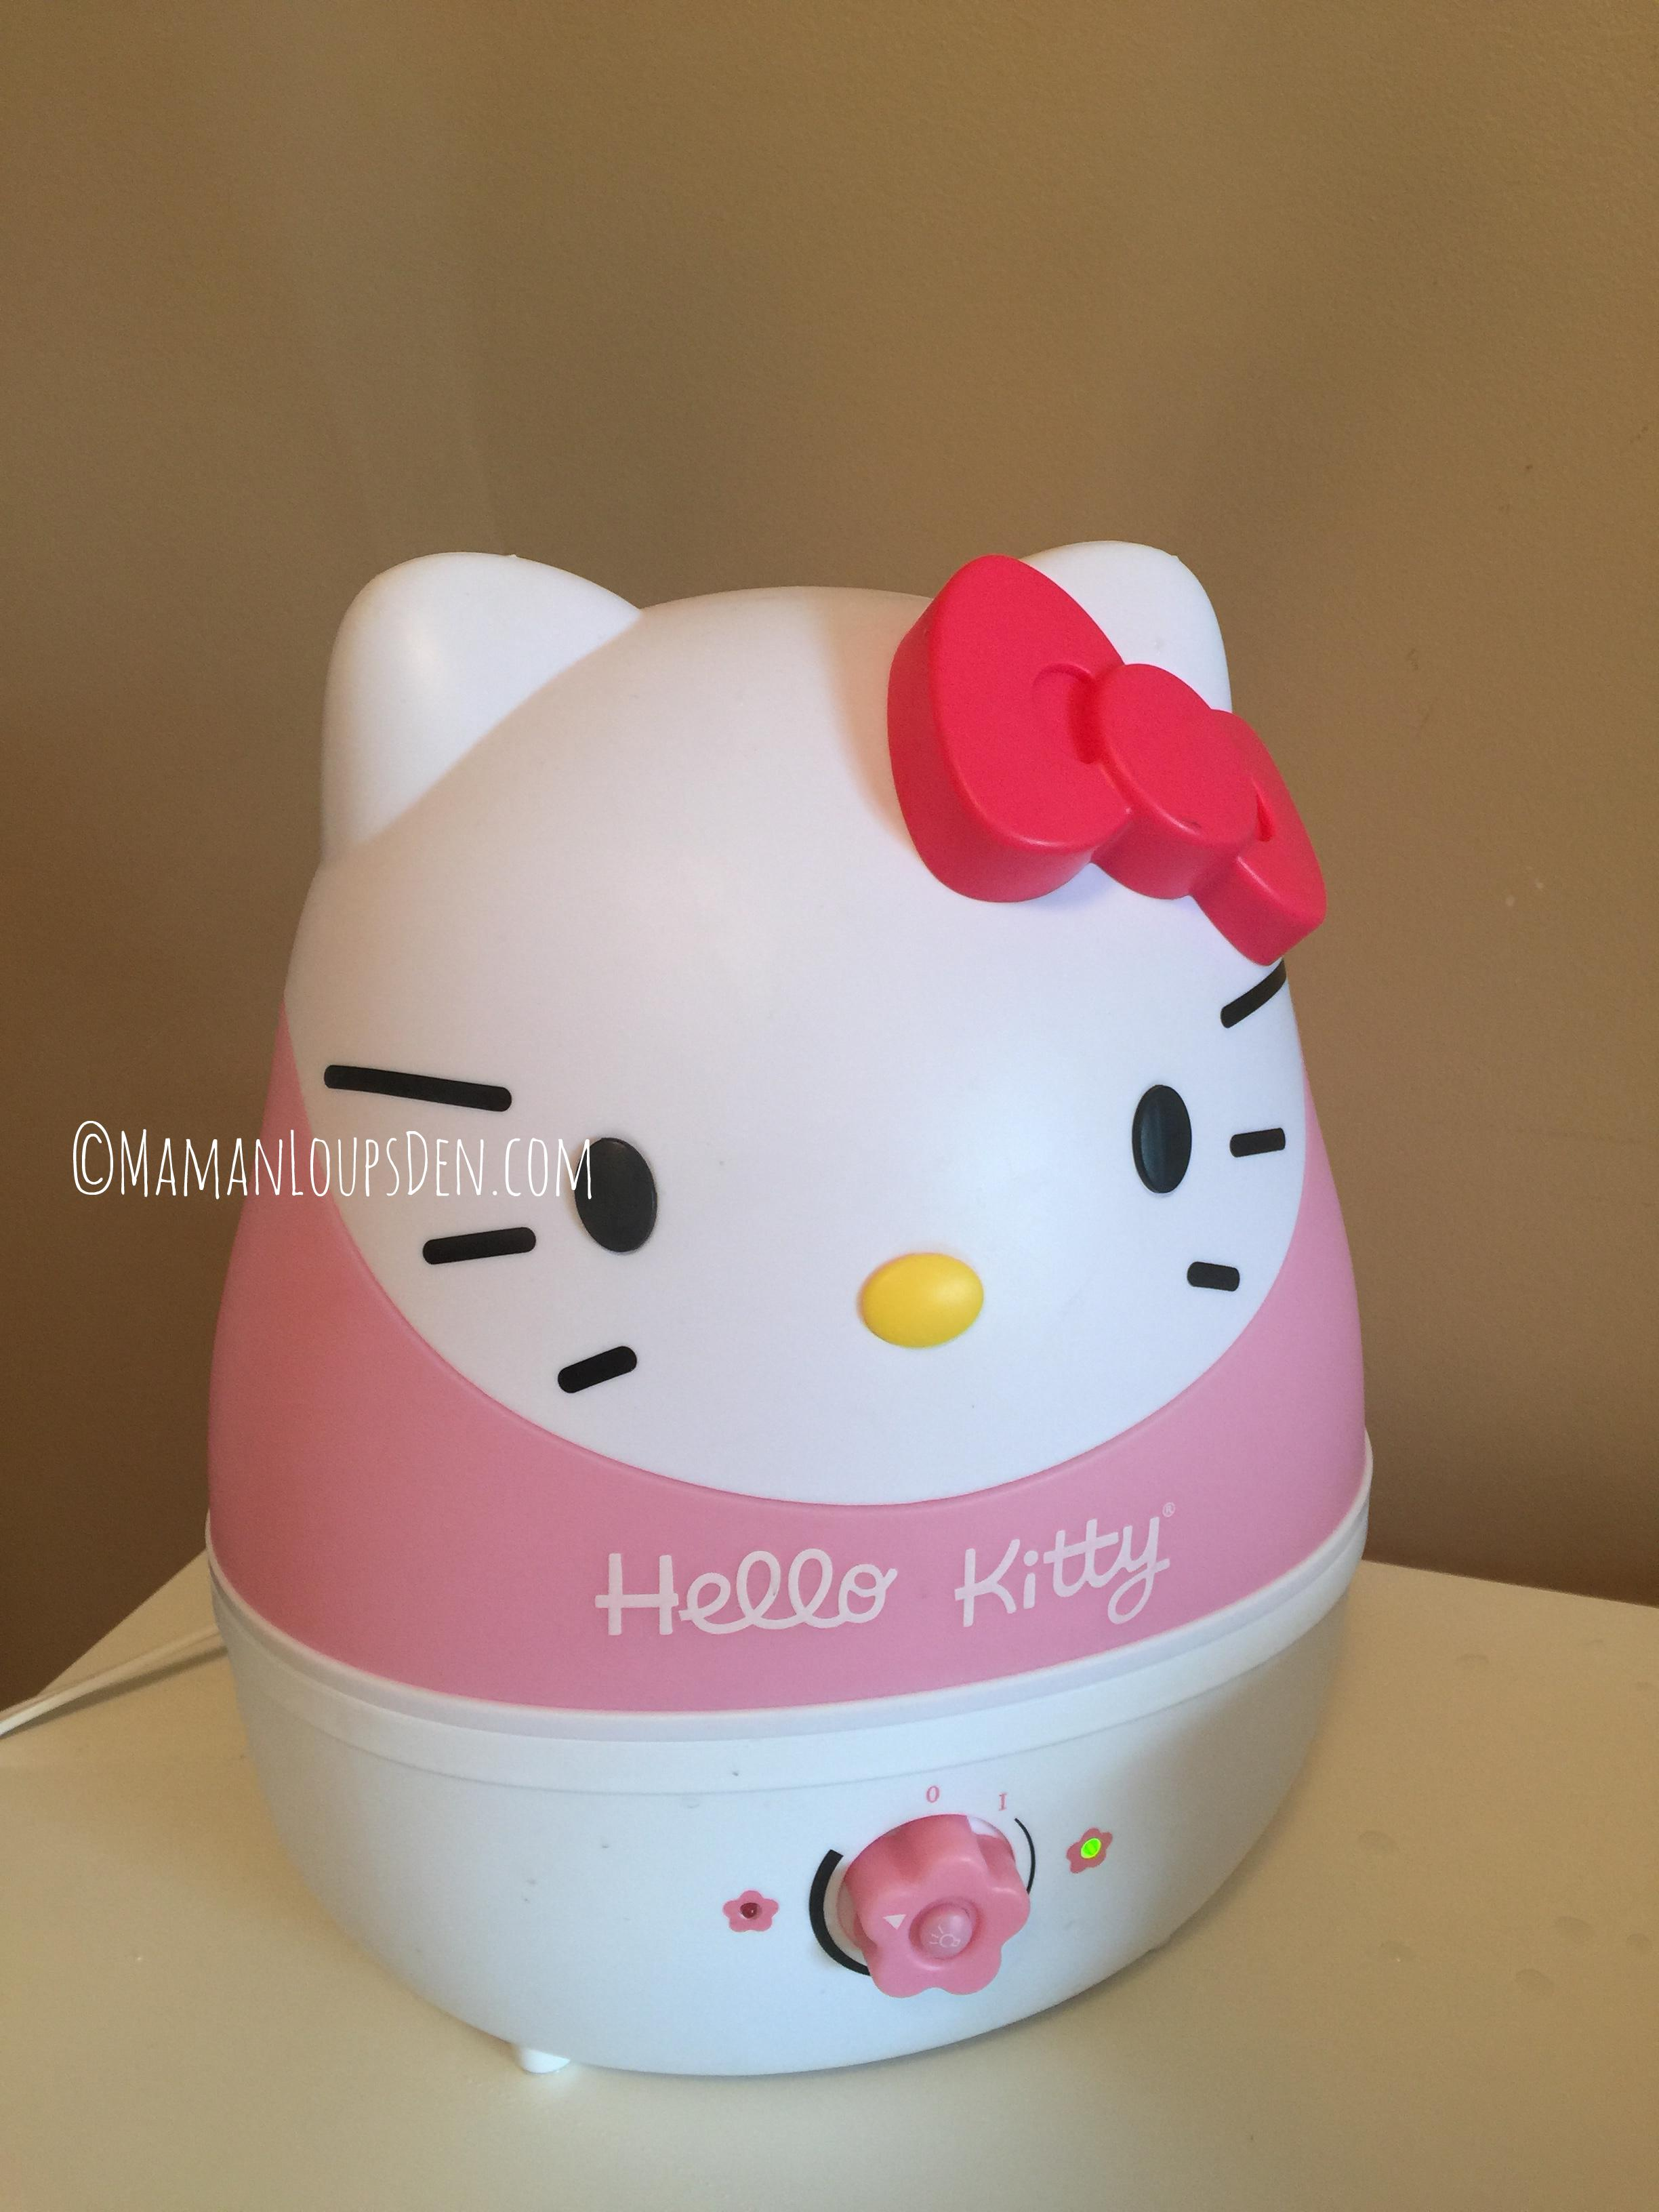 Crane Cool Mist Humidifier Hello Kitty